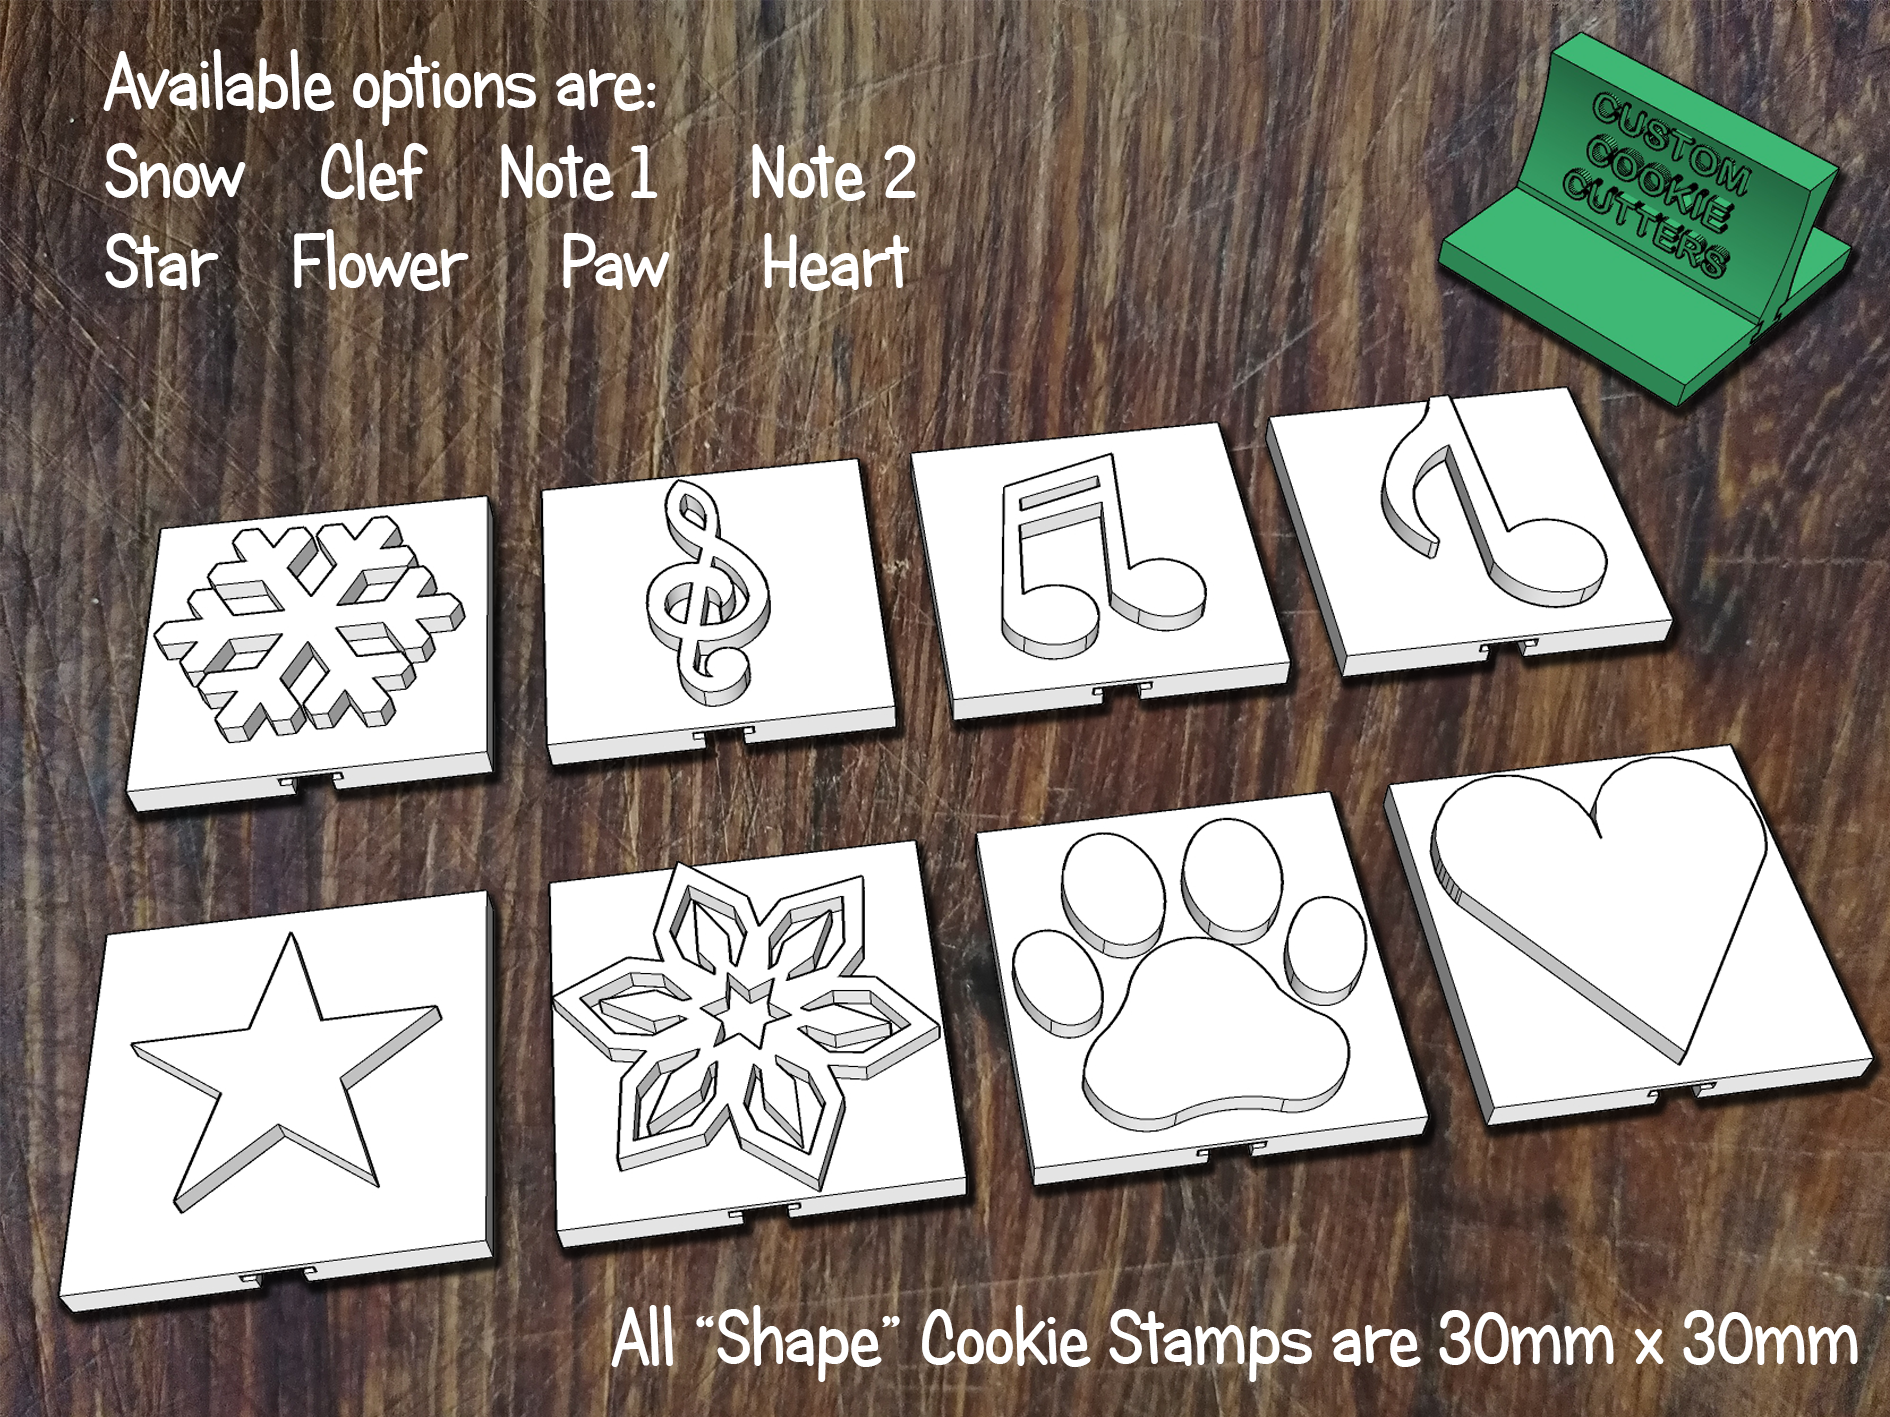 Shapes Stamps